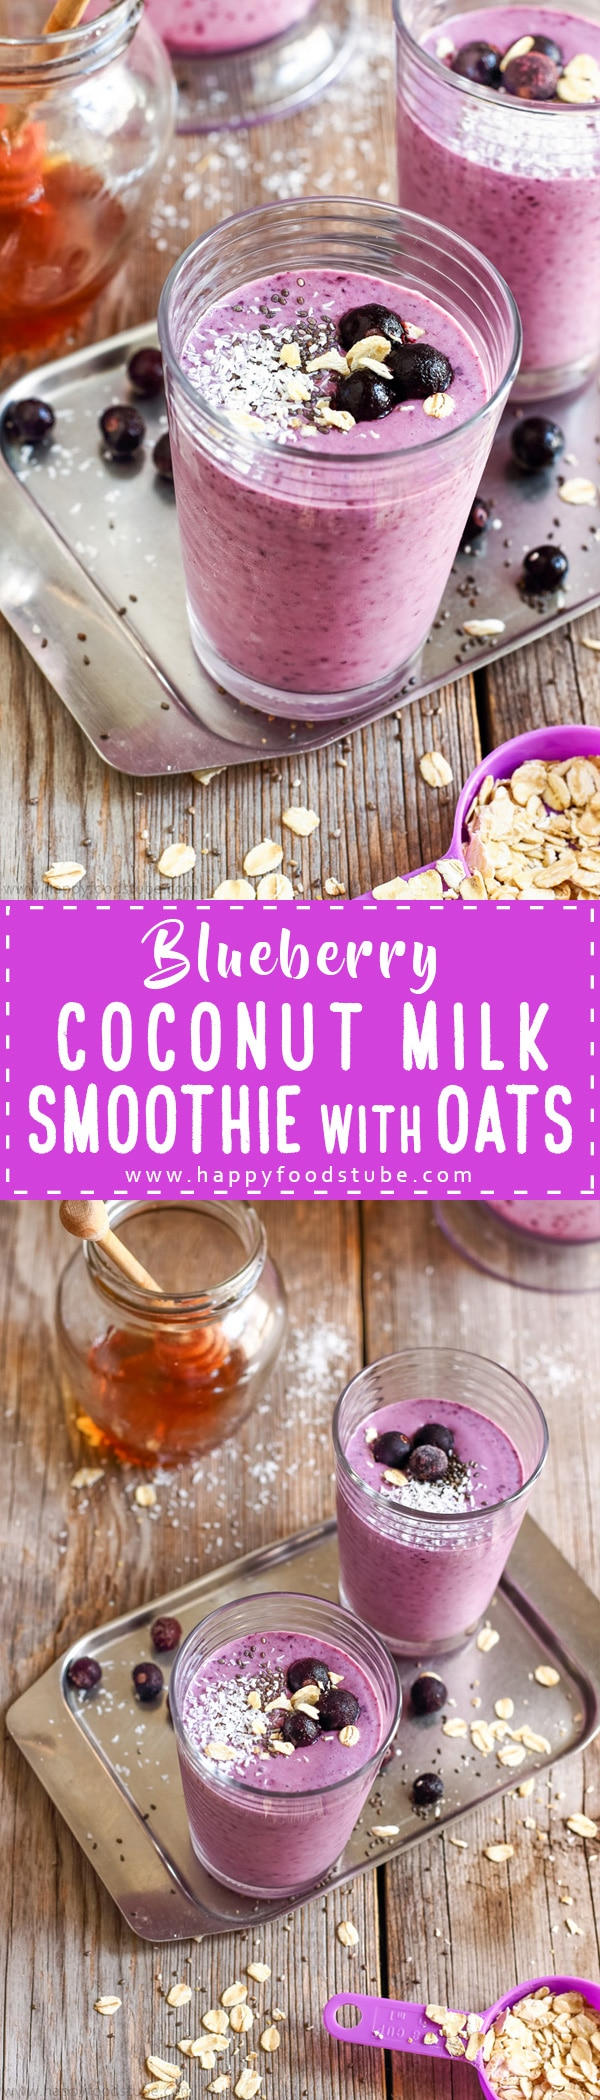 Homemade Blueberry Coconut Milk Smoothie is delicious breakfast drink and packed with antioxidants, protein, fiber, minerals and vitamins. Ready to go in just 5 minutes